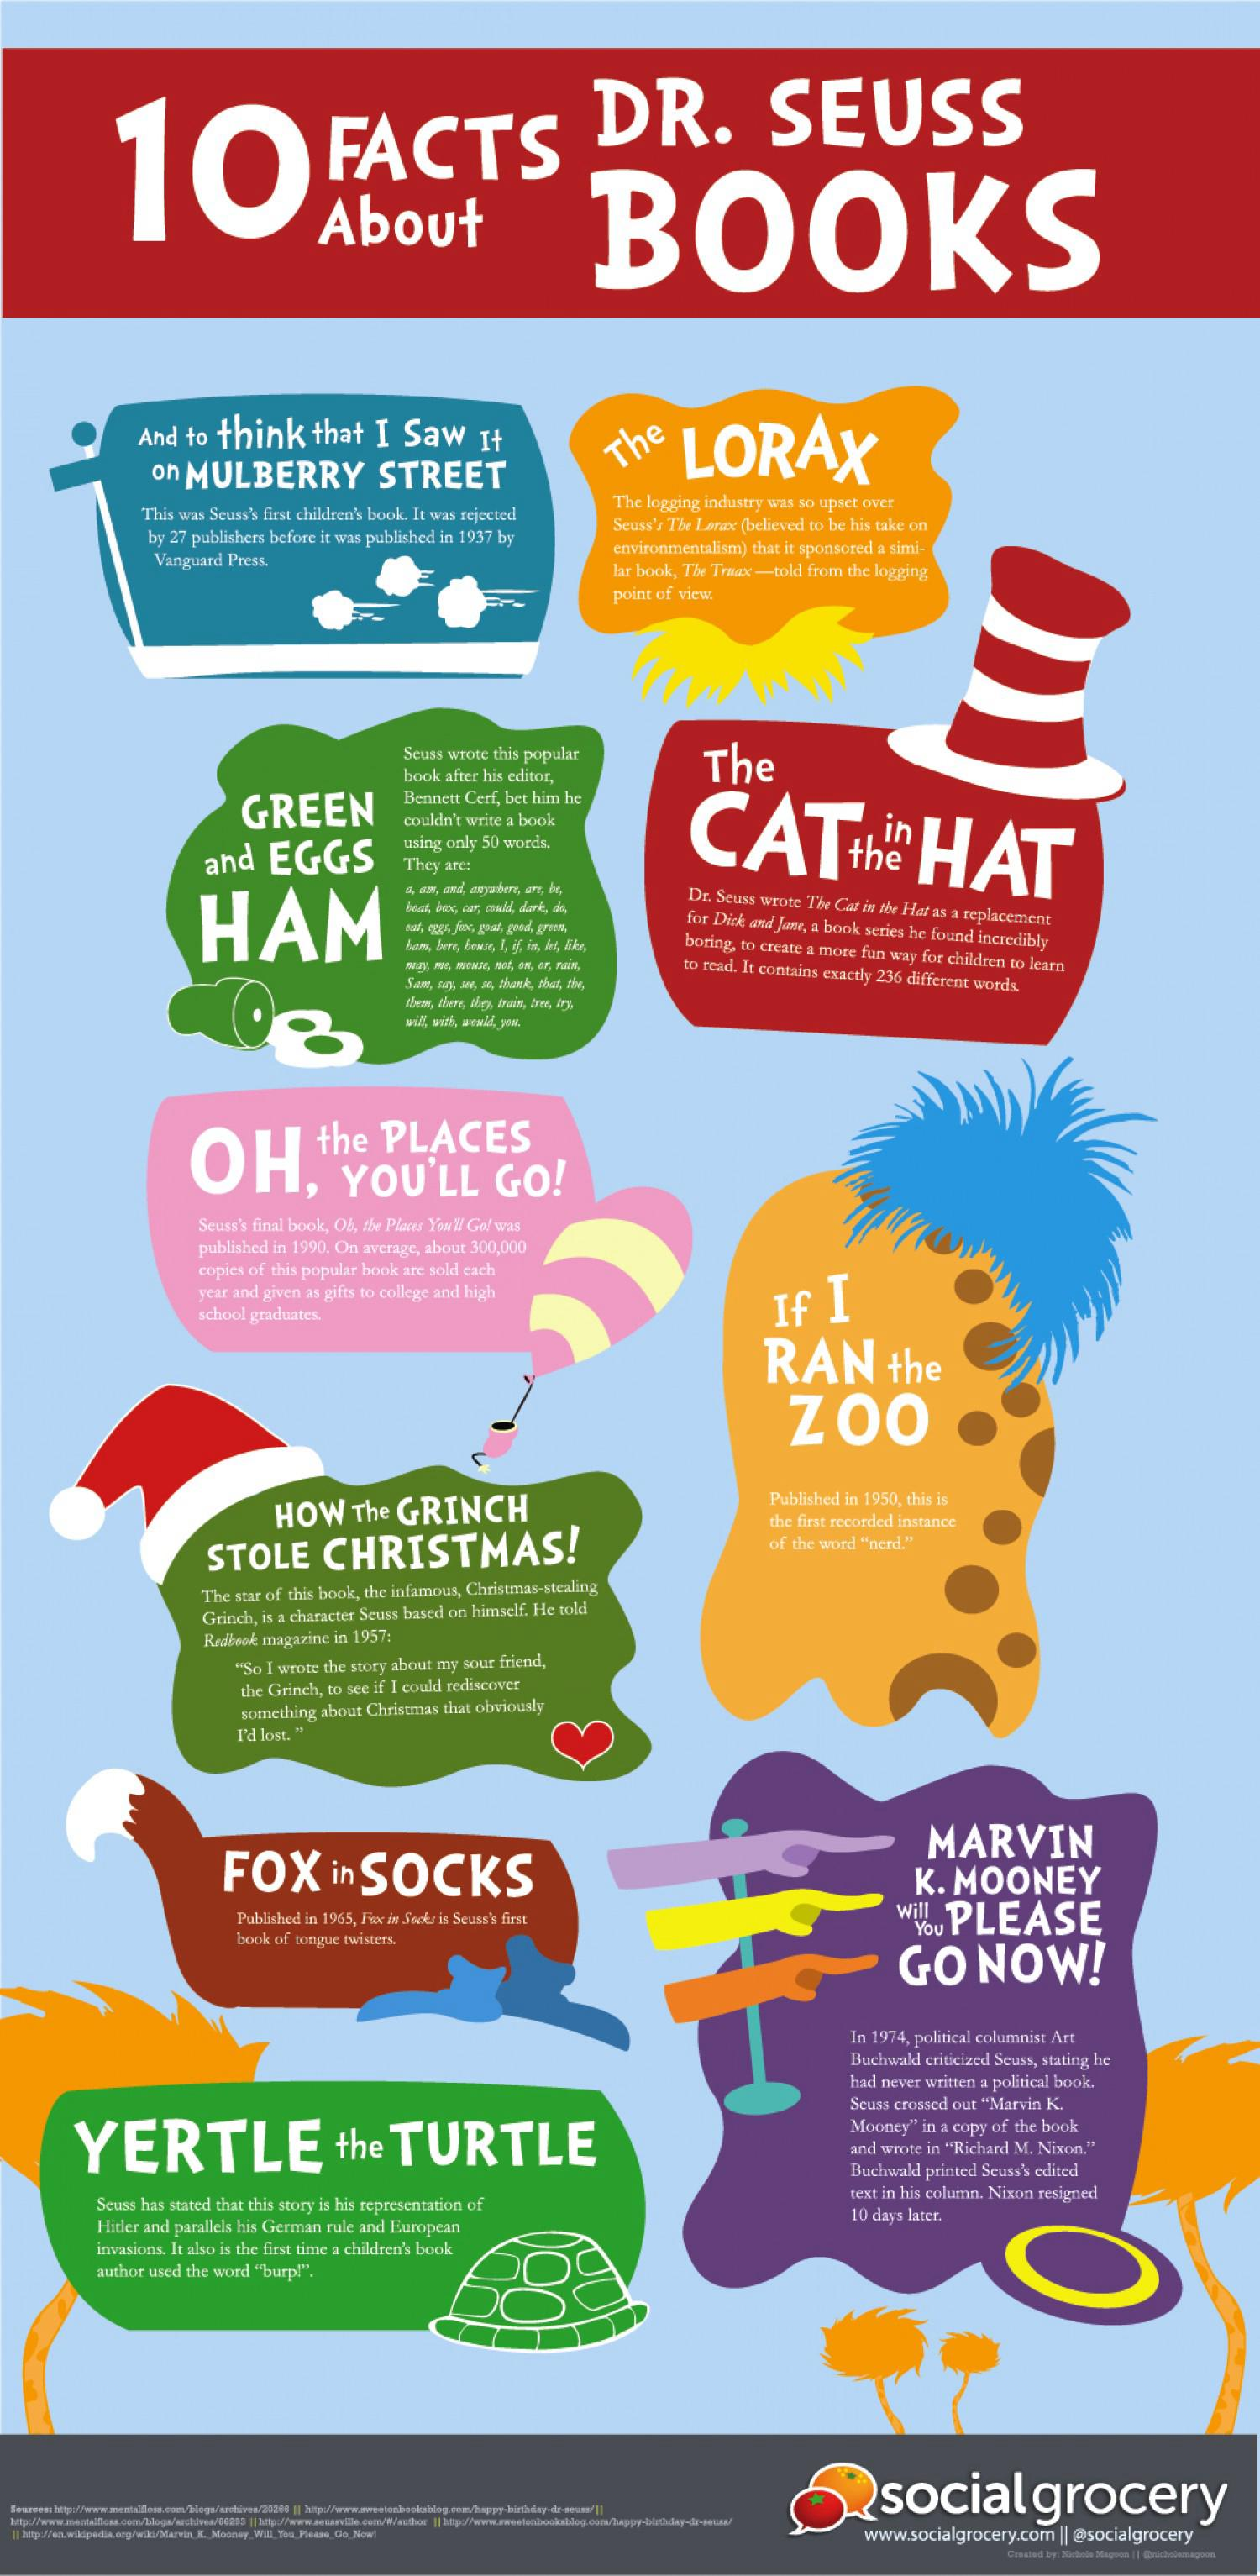 10 Facts About Dr Seuss Books